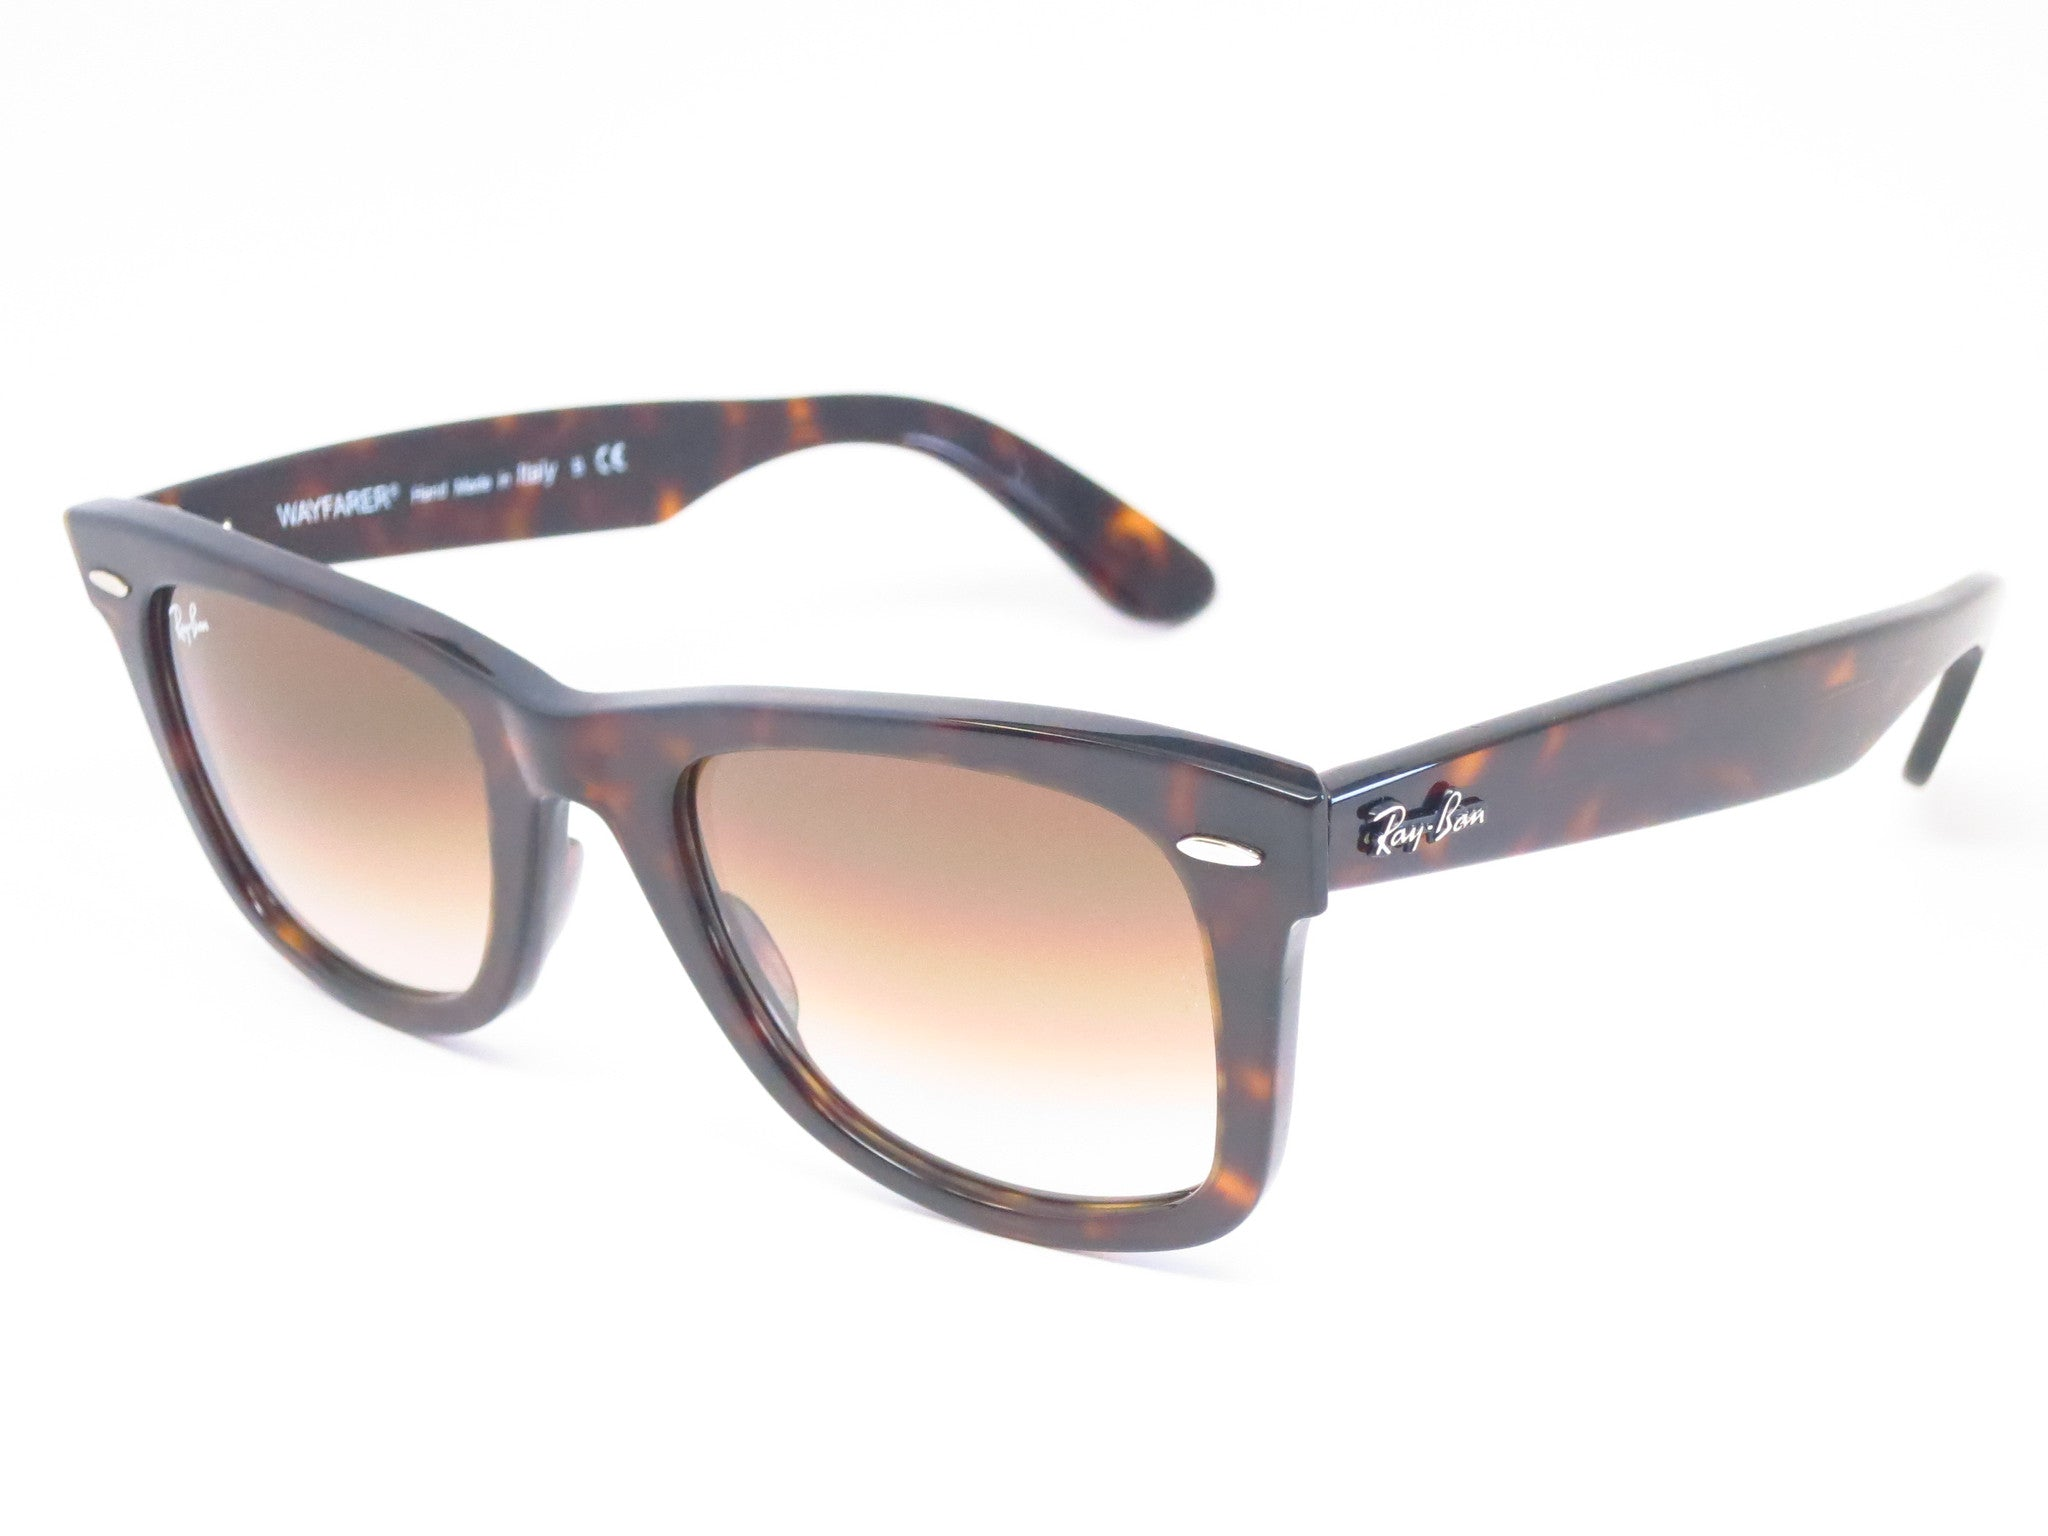 6e761bd0af4 Ray-Ban RB 2140 Original Wayfarer 902 51 Tortoise Sunglasses - Eye Heart  Shades ...